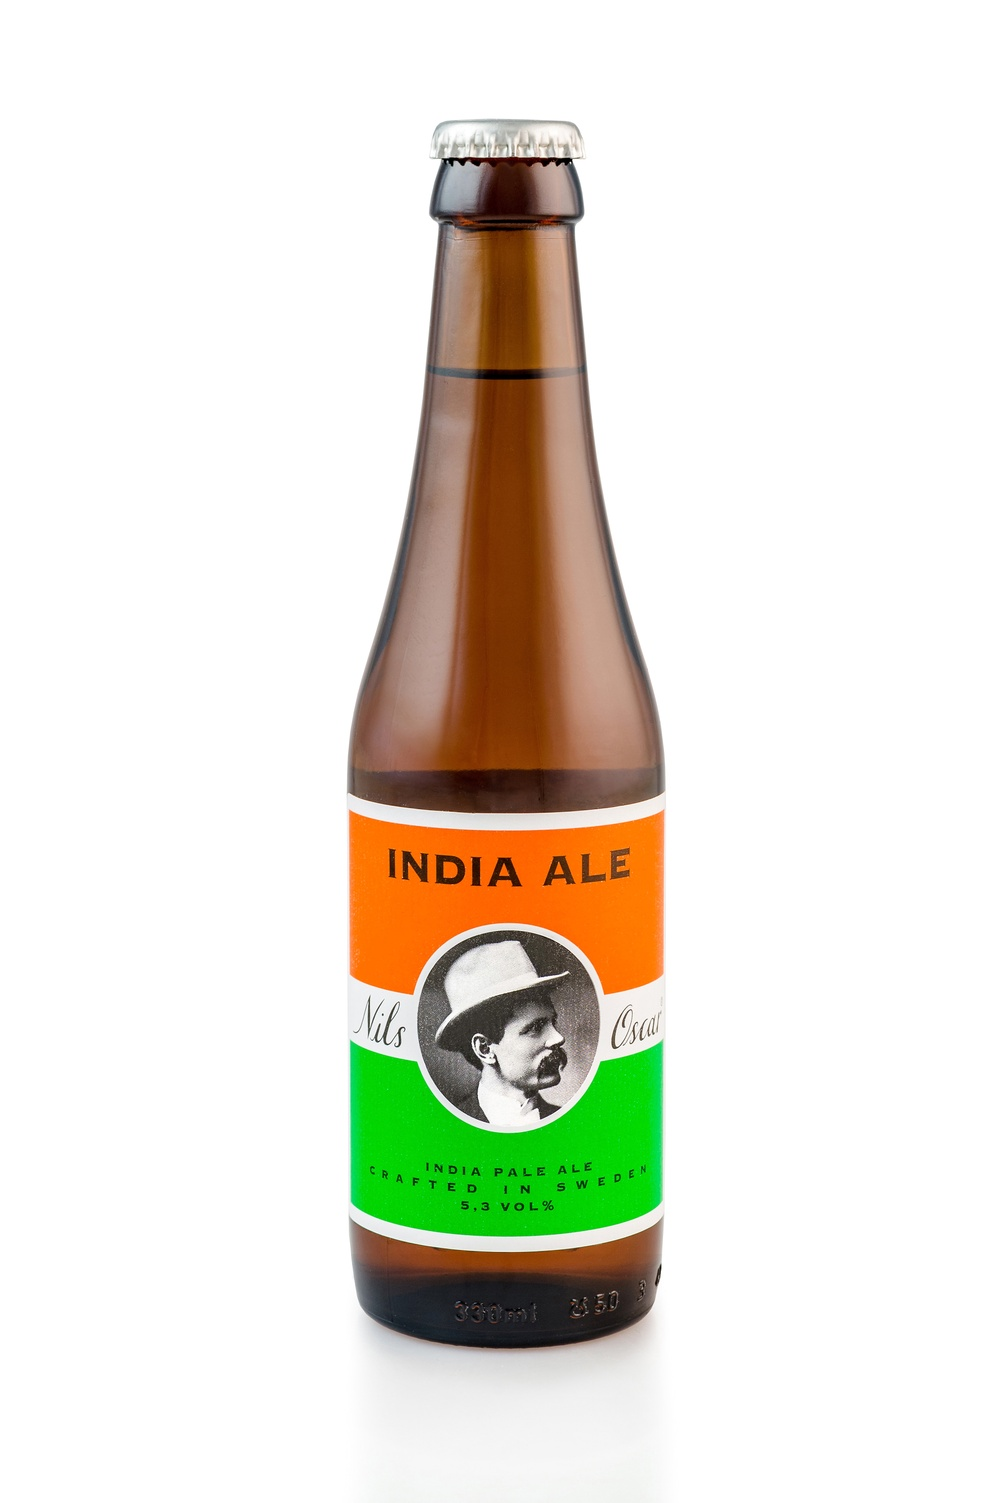 Nils Oscar India Ale